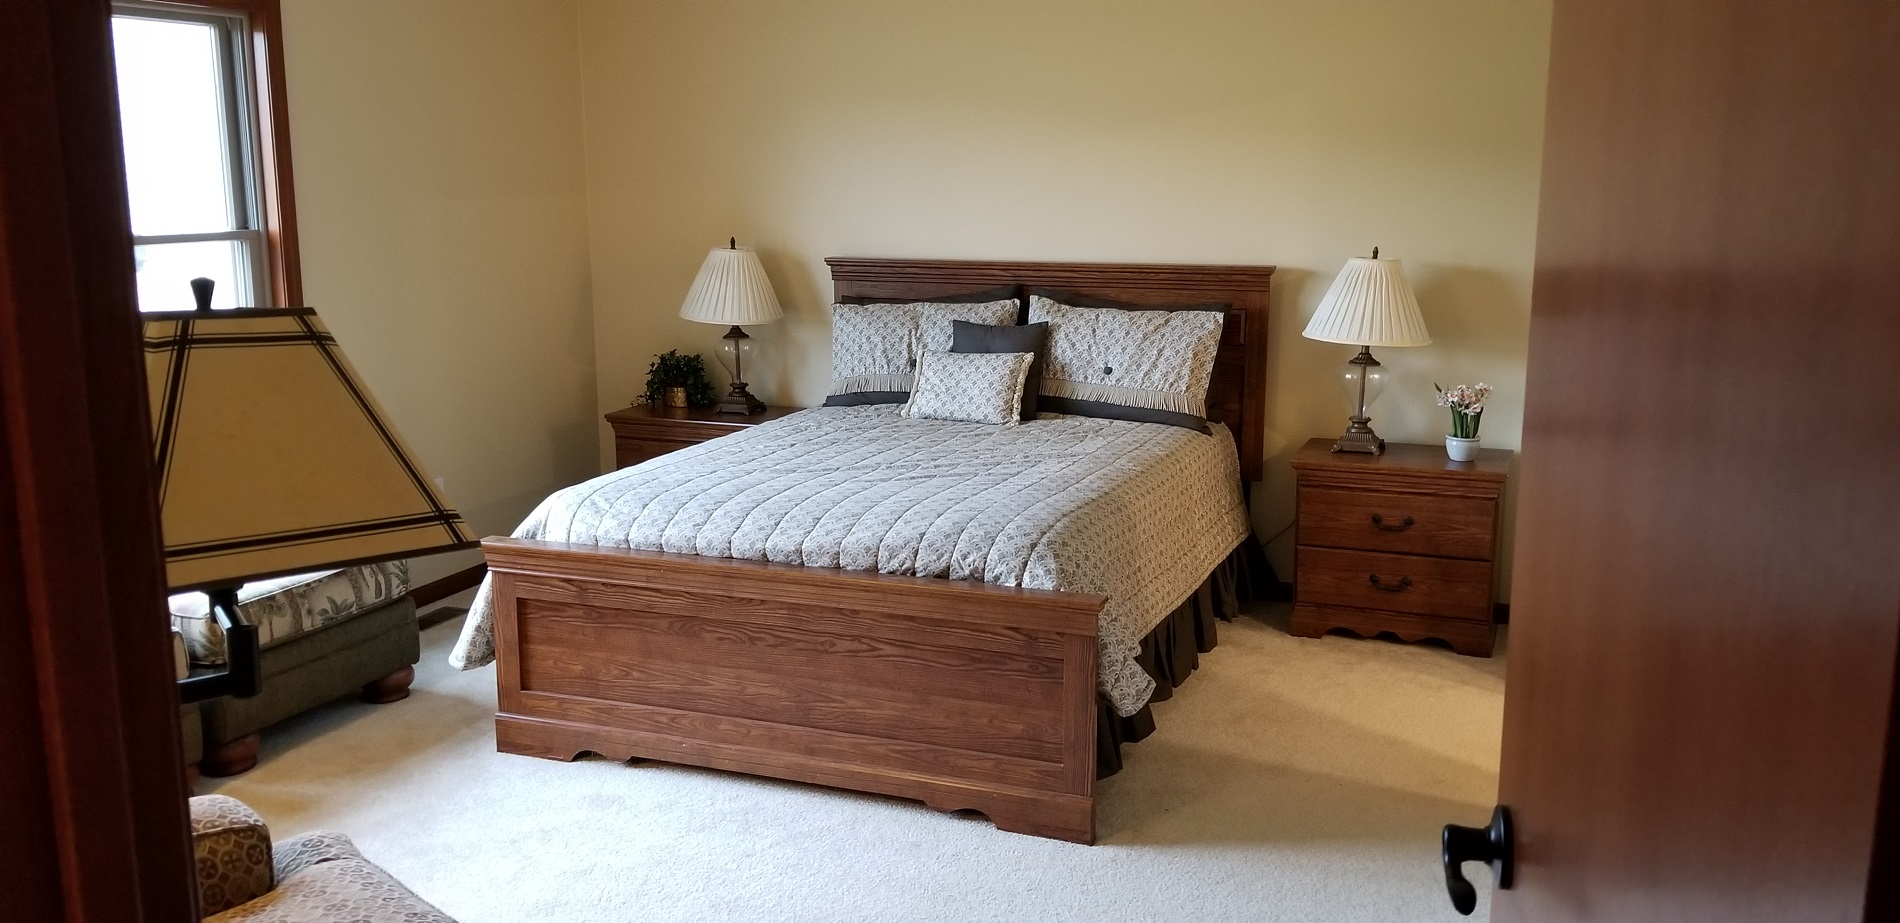 Unibilt Waverly Jackson Unibilt Waverly Jackson Master Bed